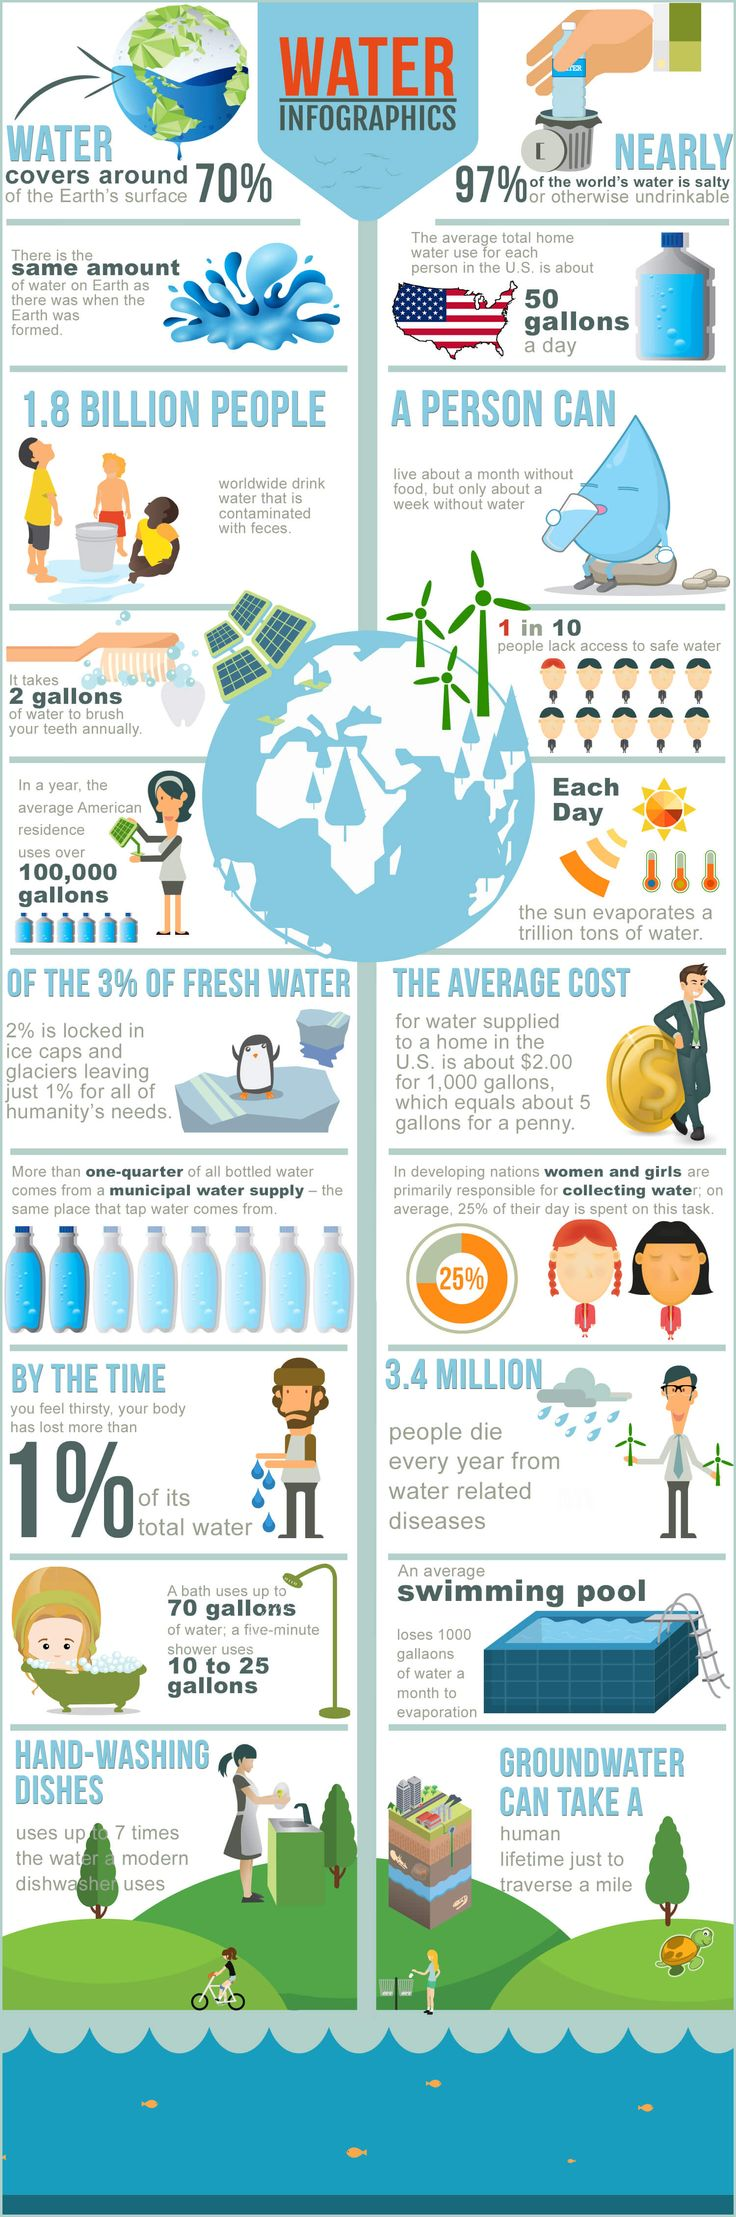 Well, since we see you love infographics we thought we'd give you another one to ponder. It's easy to take our access to safe water for granted, but with the recent crisis in Flint, Michigan more people are becoming aware of how important it is for us to make safe drinking water a priority. Hopefully this information puts our water situation into perspective. We have a massive amount of water on Earth but only a tiny fraction of it is water we can use to survive. #infographics